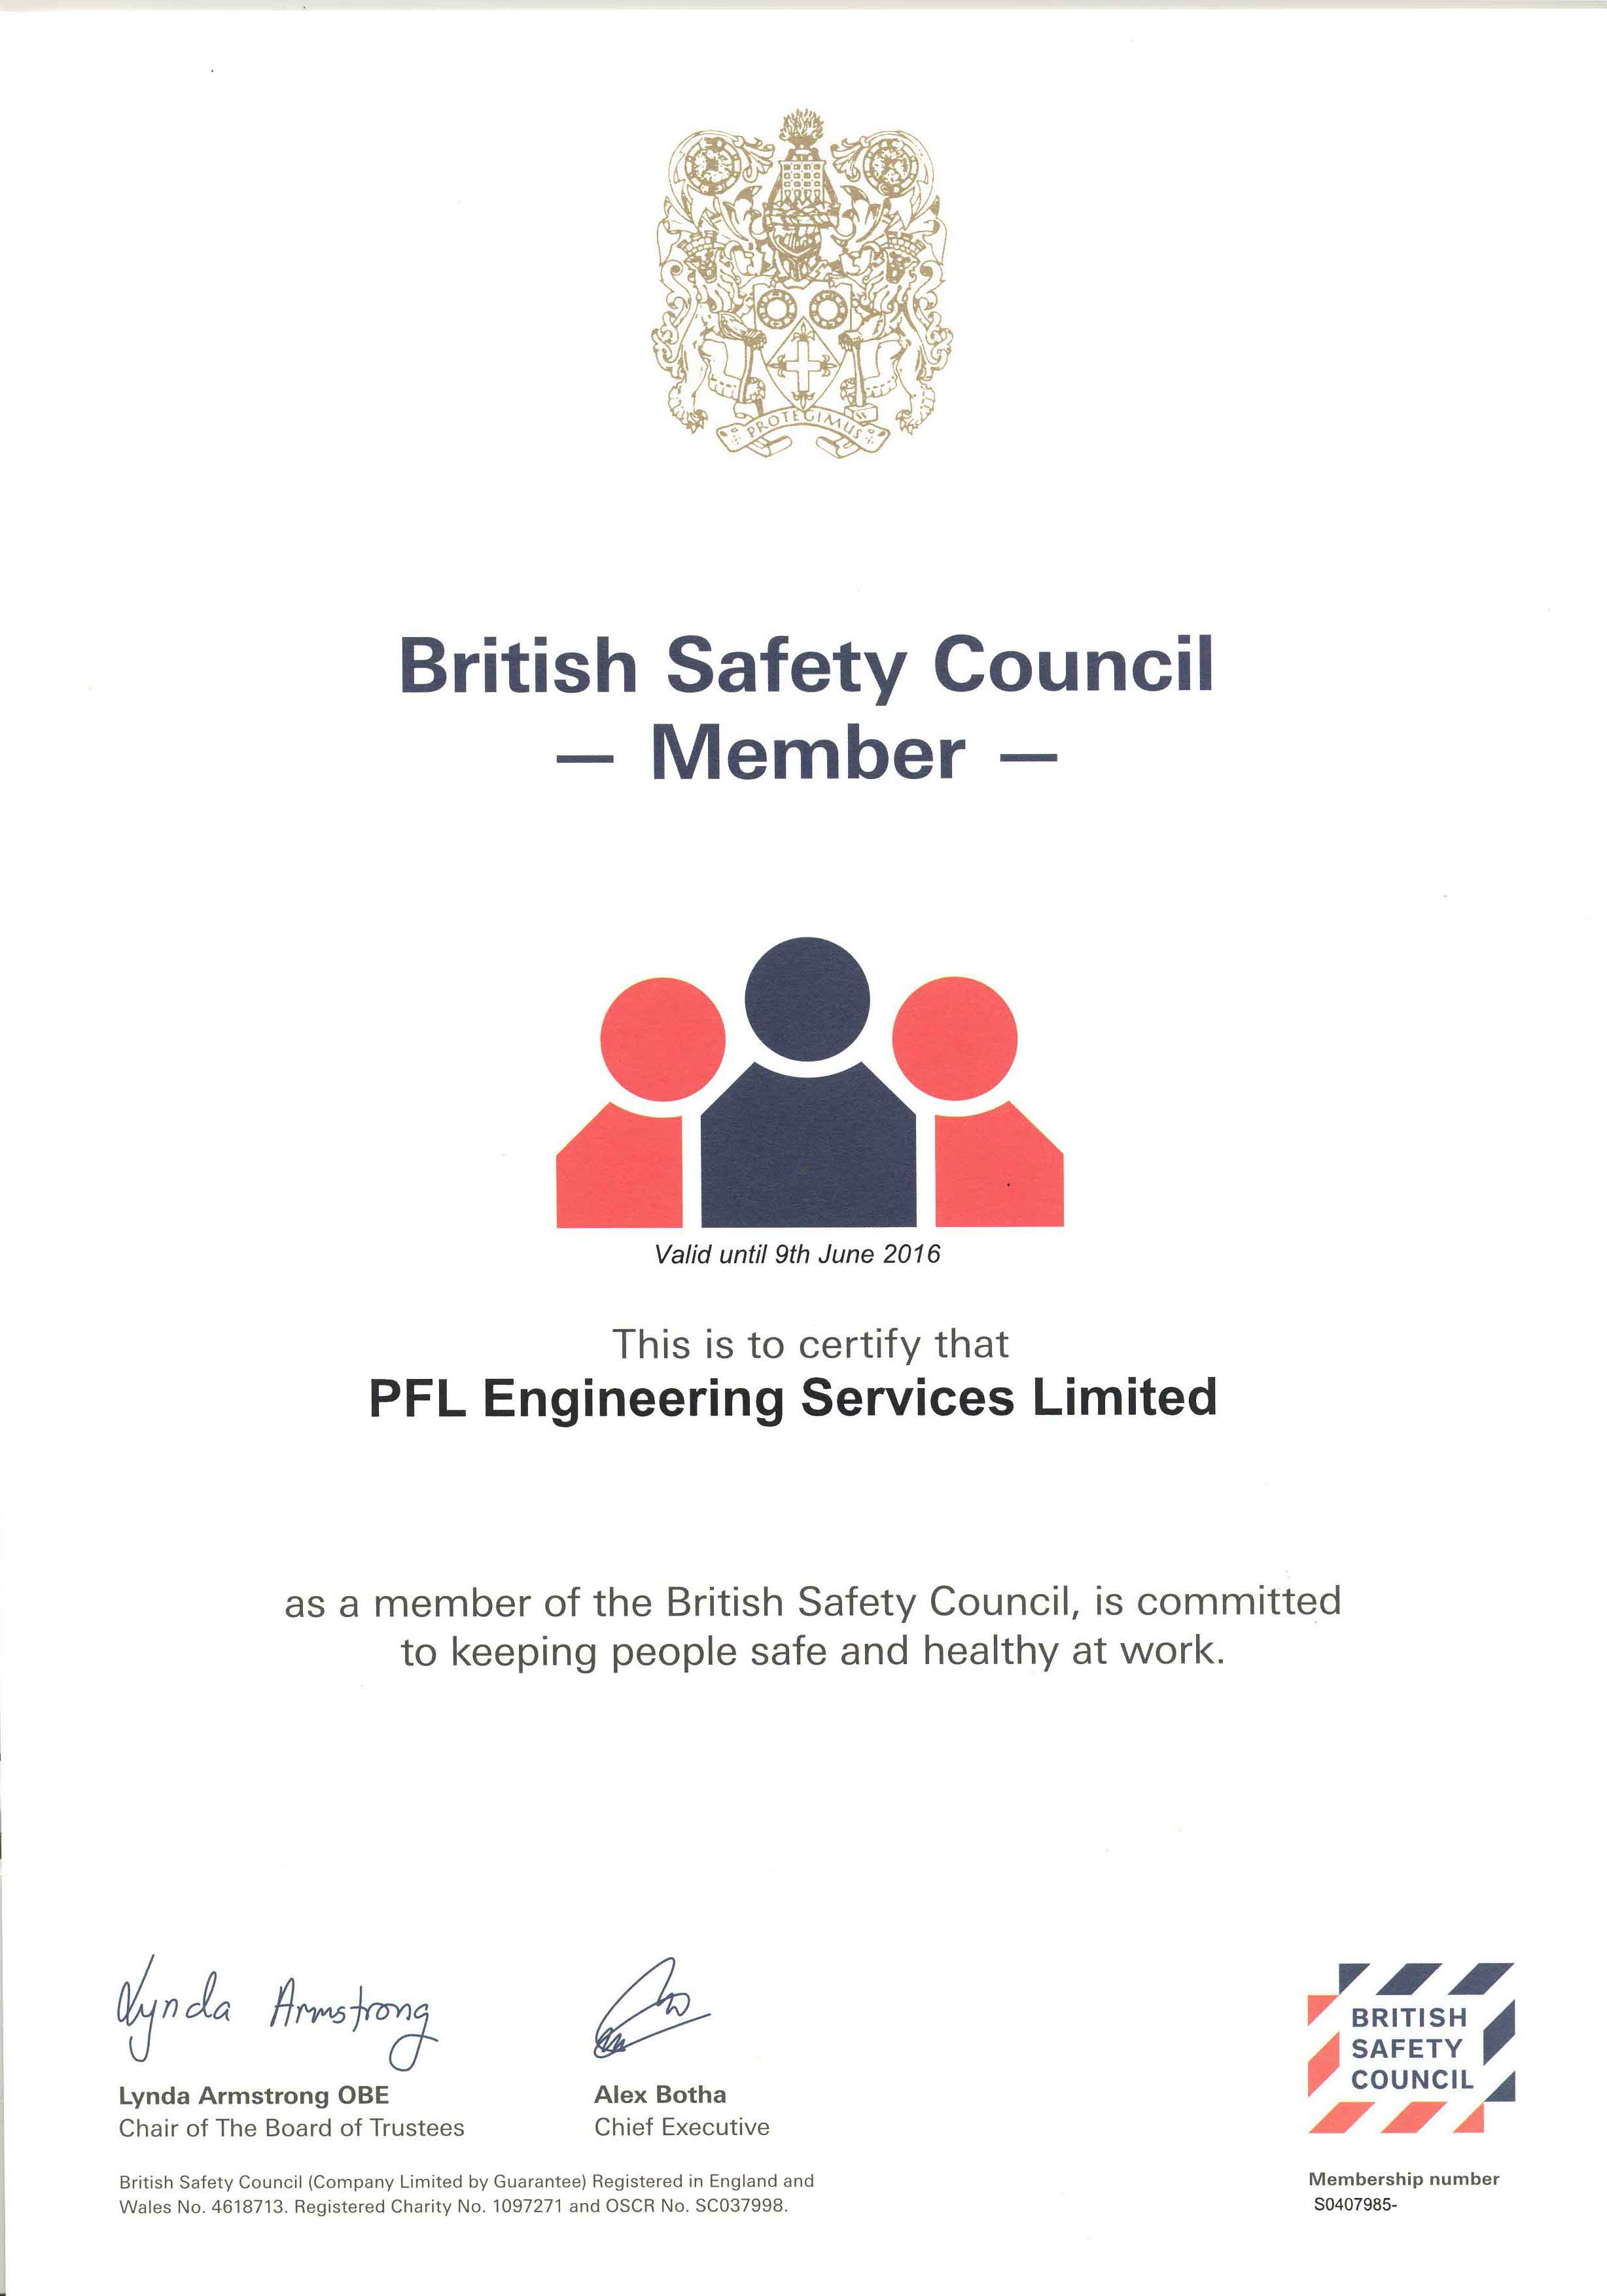 British Safety Council Certified